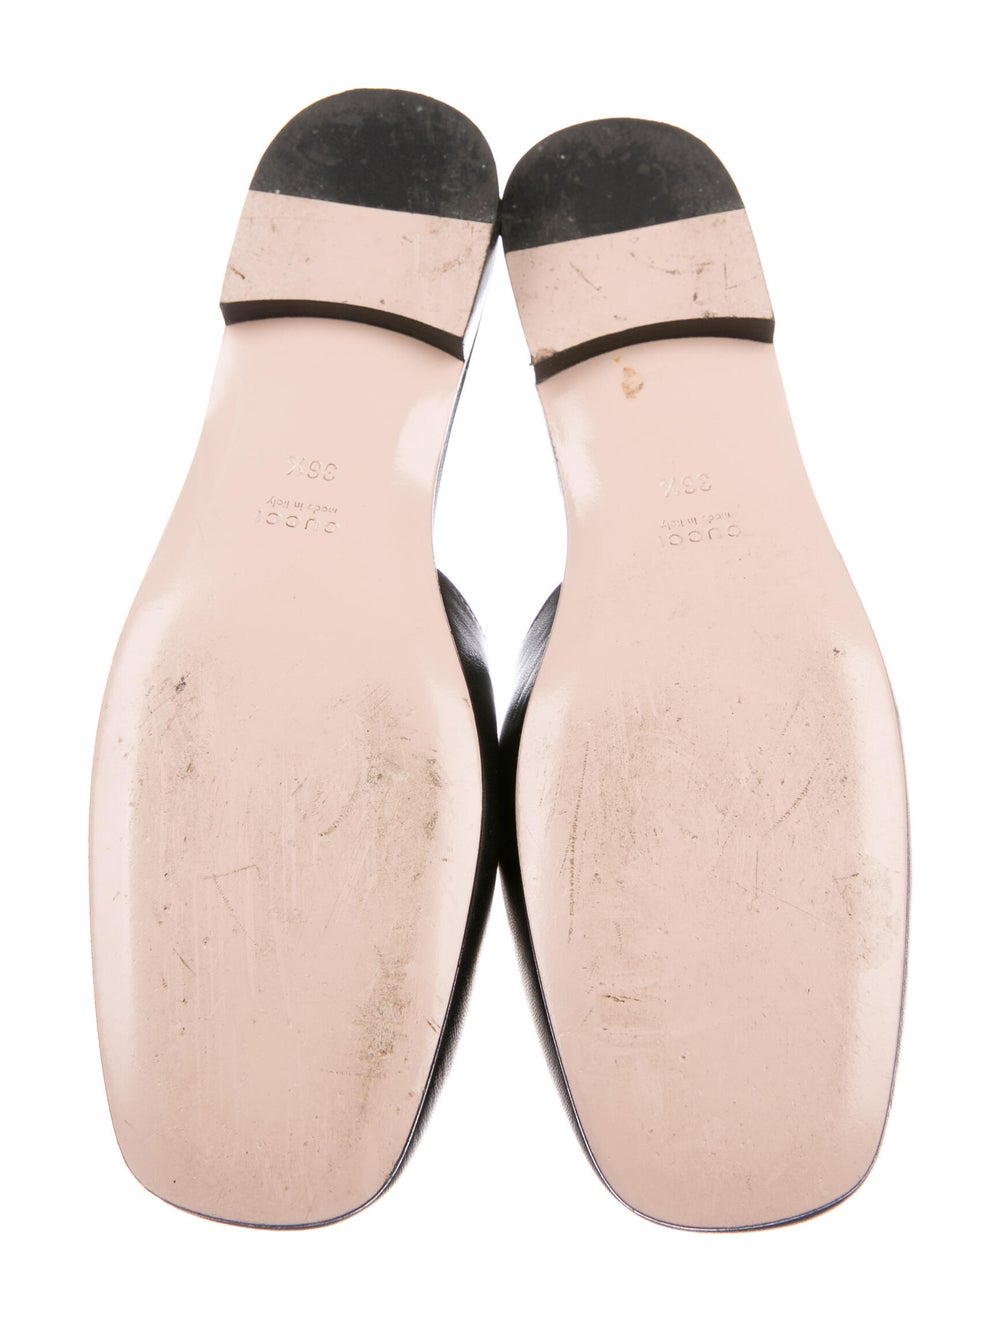 Gucci Leather Crystal Embellishments Mules Black - image 5